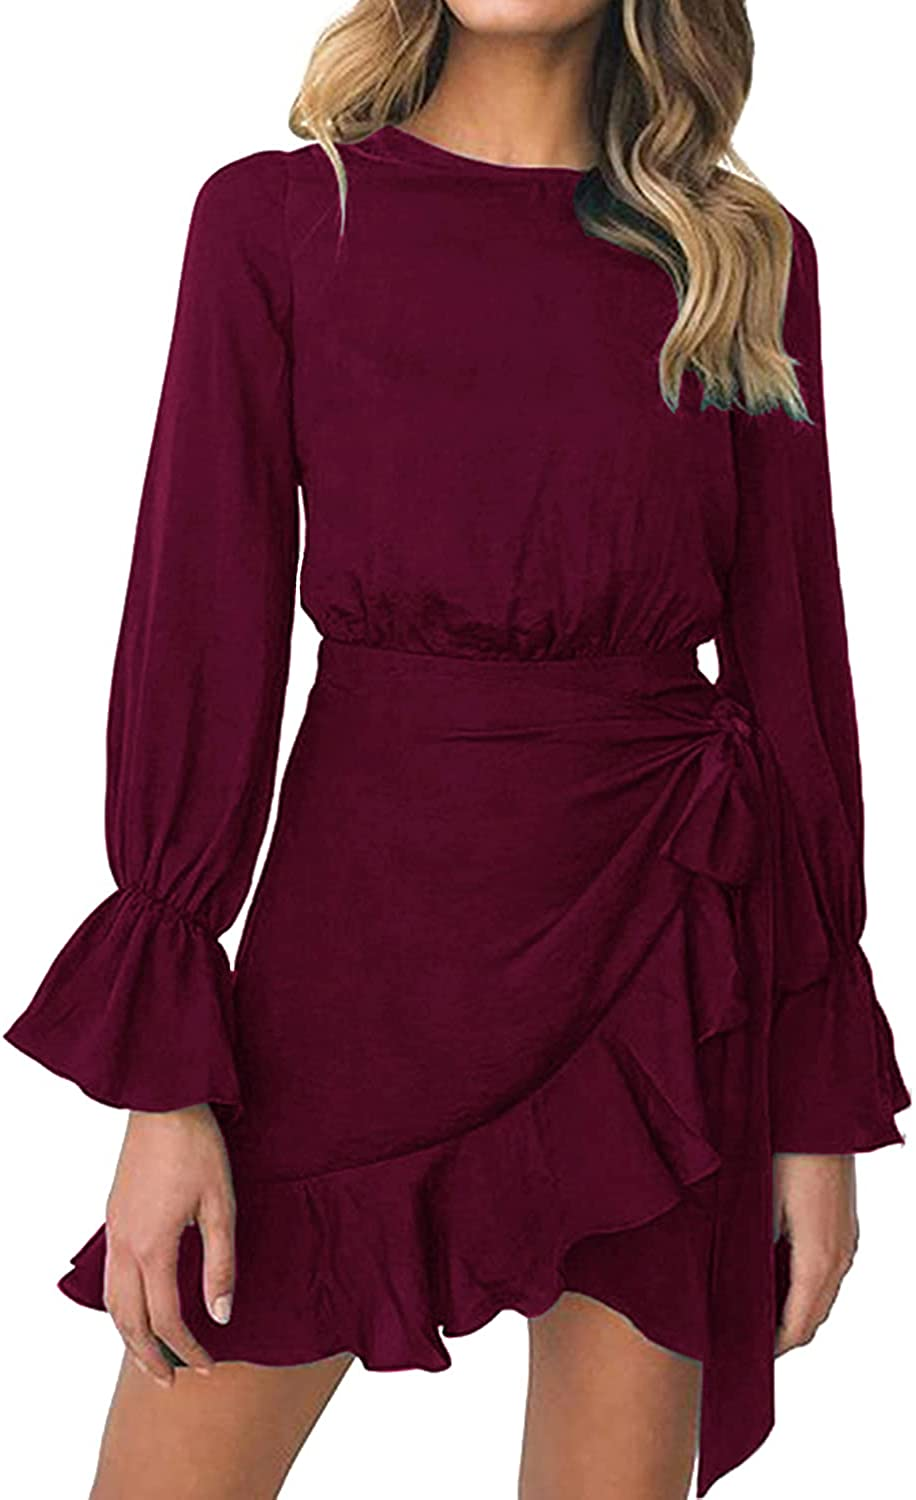 WEEPINLEE Womens Long Sleeve Round Neck Ruffles Wrap Dresses Party Dress